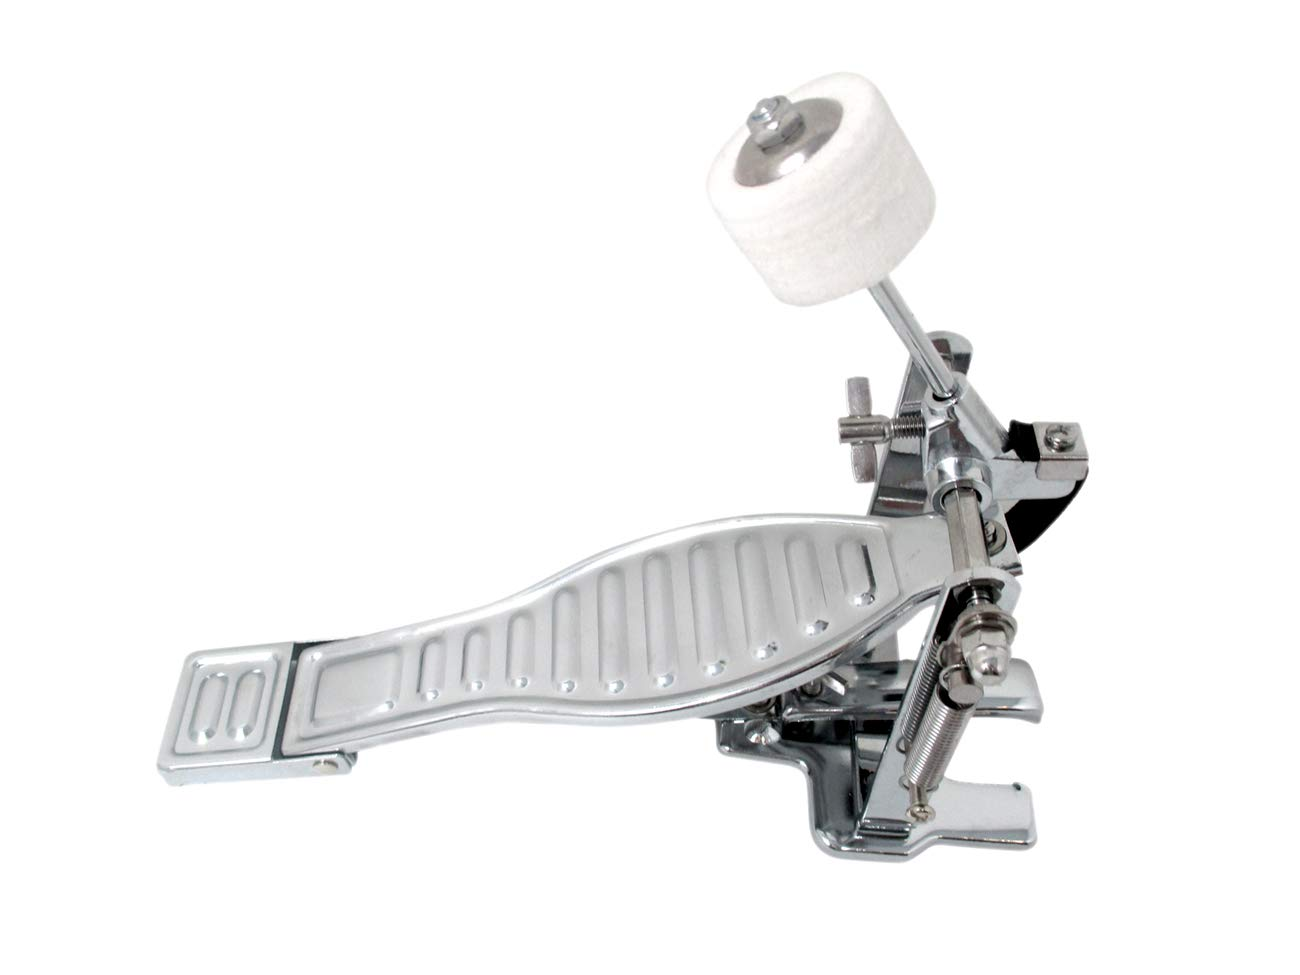 Kick Bass Drum Pedal For Drum Set by Trademark Innovations by Trademark Innovations